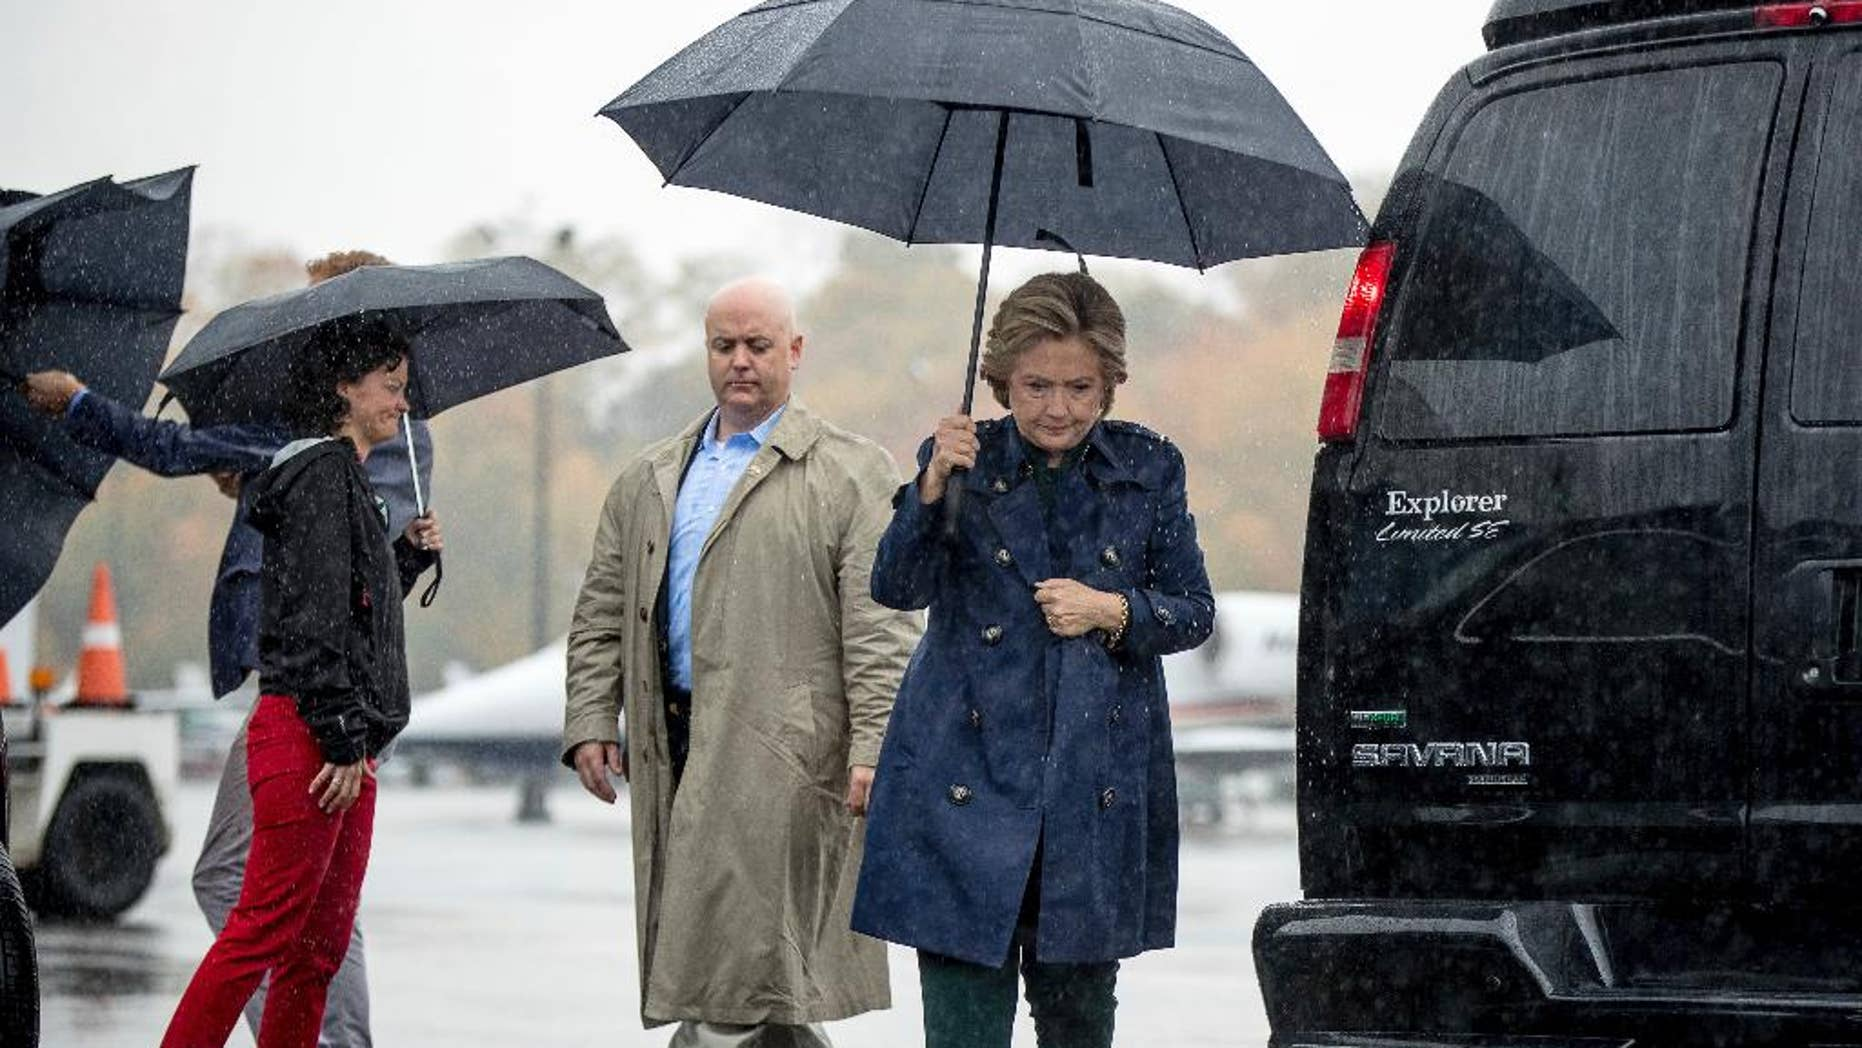 Democratic presidential candidate Hillary Clinton arrives to board her campaign plane at Westchester County Airport in White Plains, N.Y., Friday, Oct. 21, 2016, to travel to Cleveland for a rally. (AP Photo/Andrew Harnik)